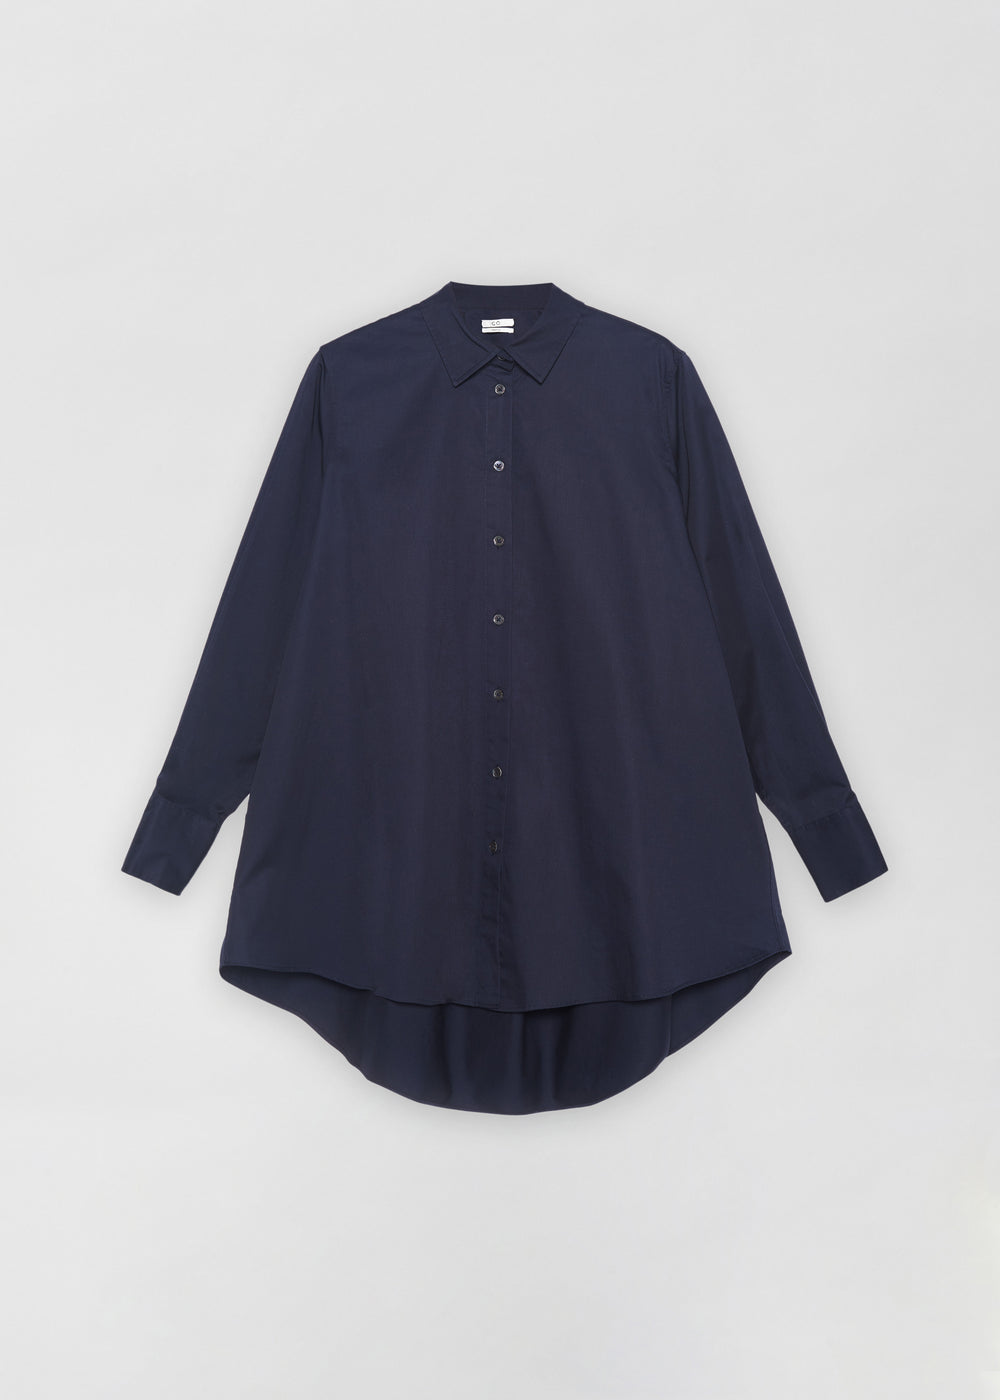 A-Line Button Down Shirt in Cotton Poplin - White in Navy by Co Collections